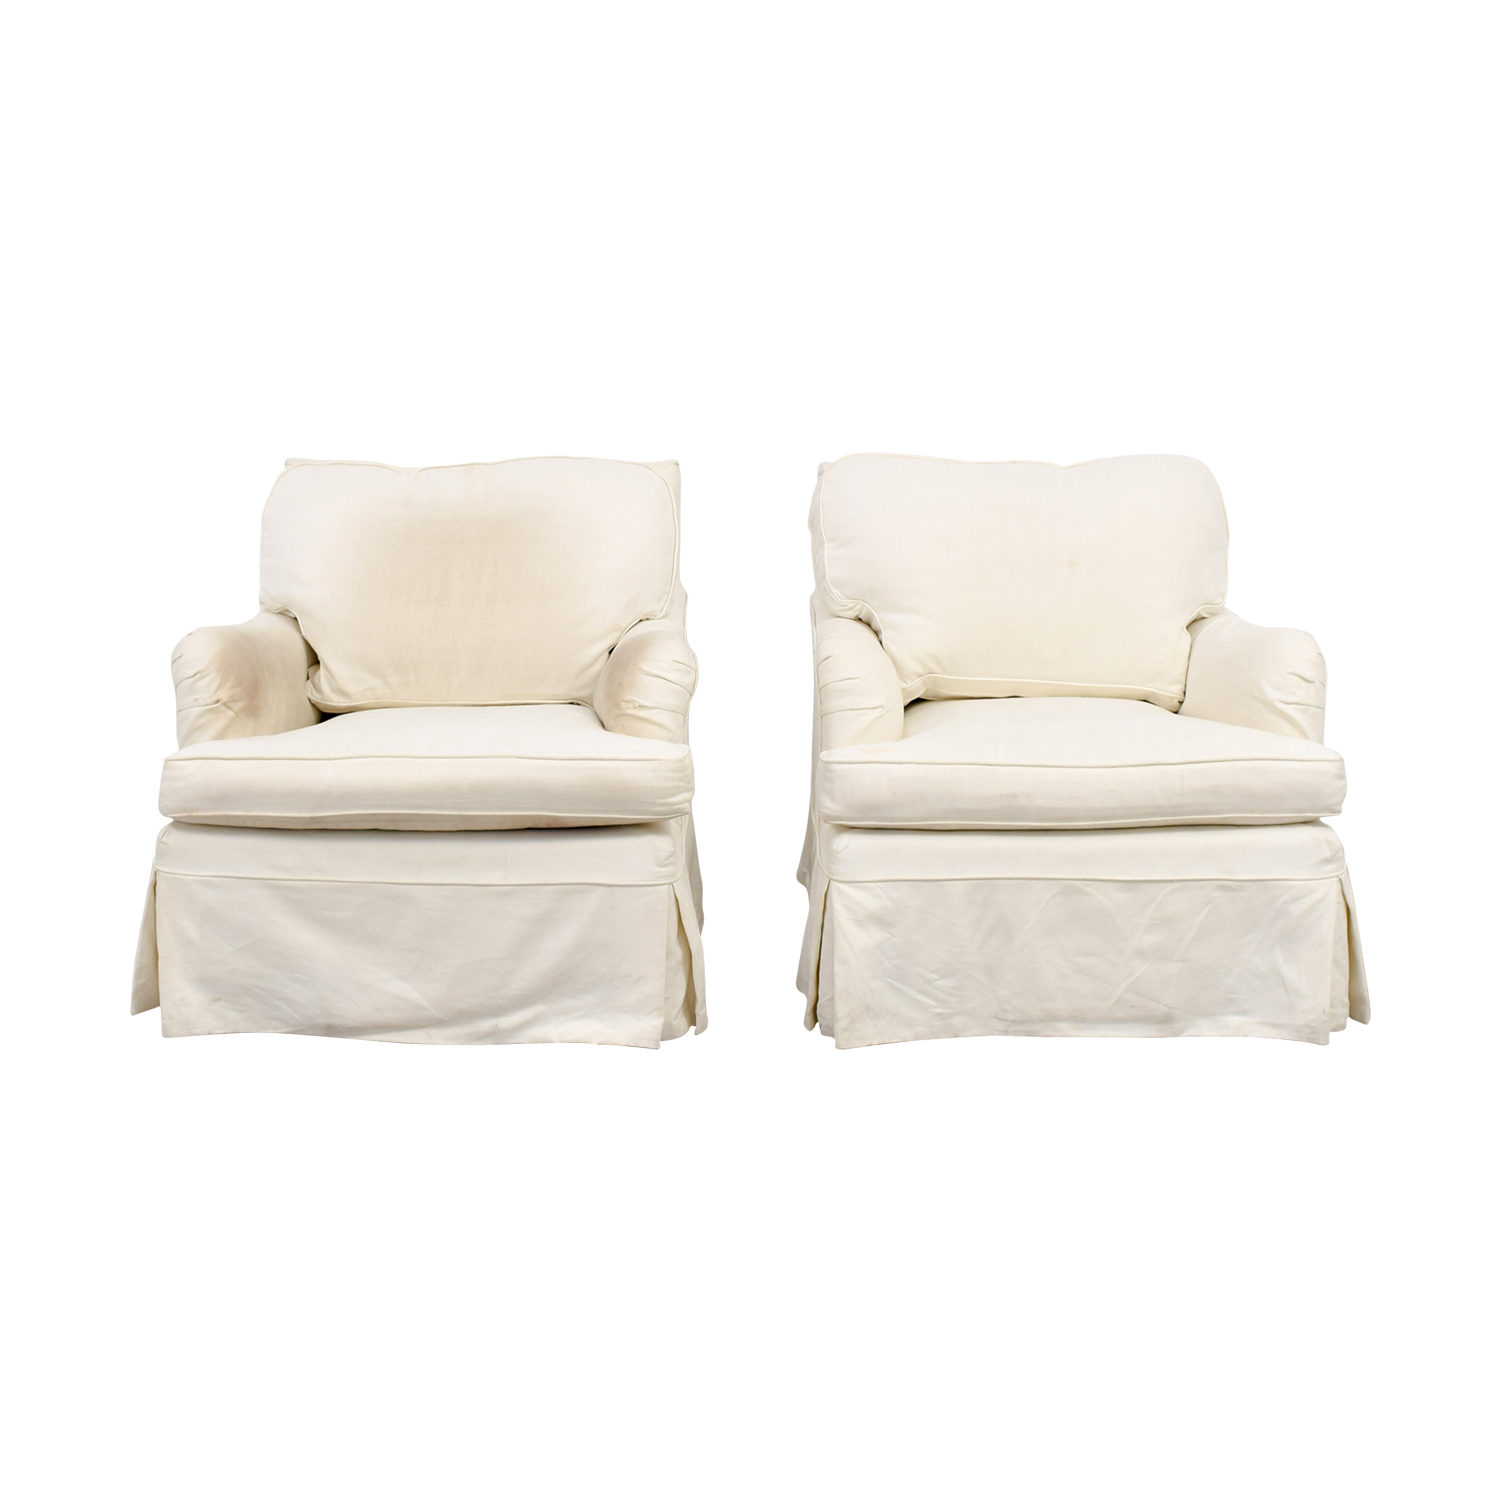 shop William Farrell William Farrell Upholstered Swivel Arm Chairs online